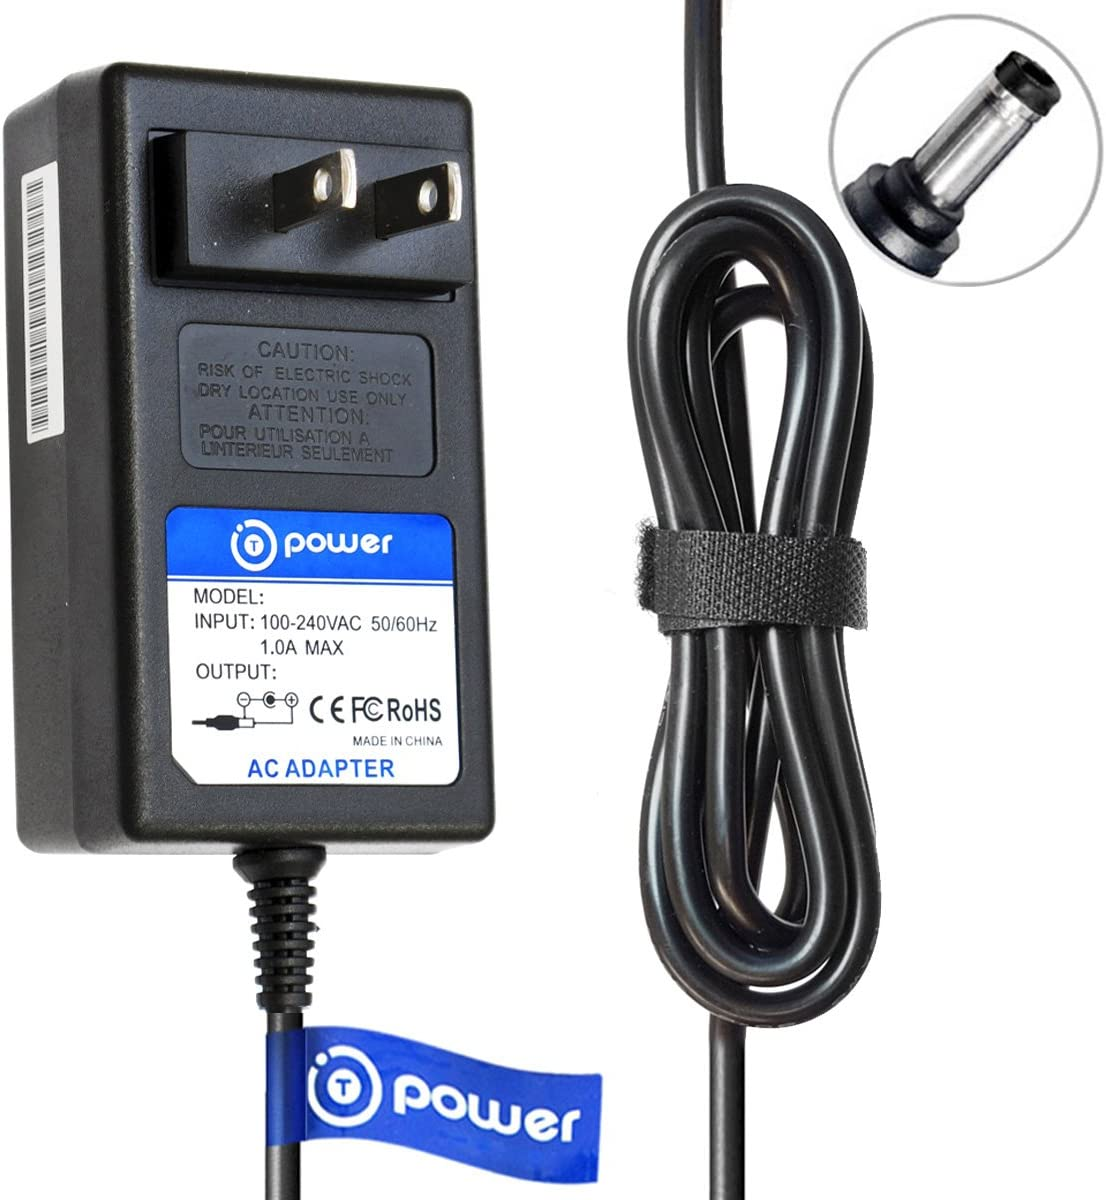 T POWER 19V Ac Dc Adapter Charger Compatible with Eufy RoboVac 11 11+ 11S 30 Series & Pure Clean Smart Robotic Vacuum Cleaner Model T2102 PUCRC15 PUCRC25 PUCRC26B PUCRC90 Power Supply